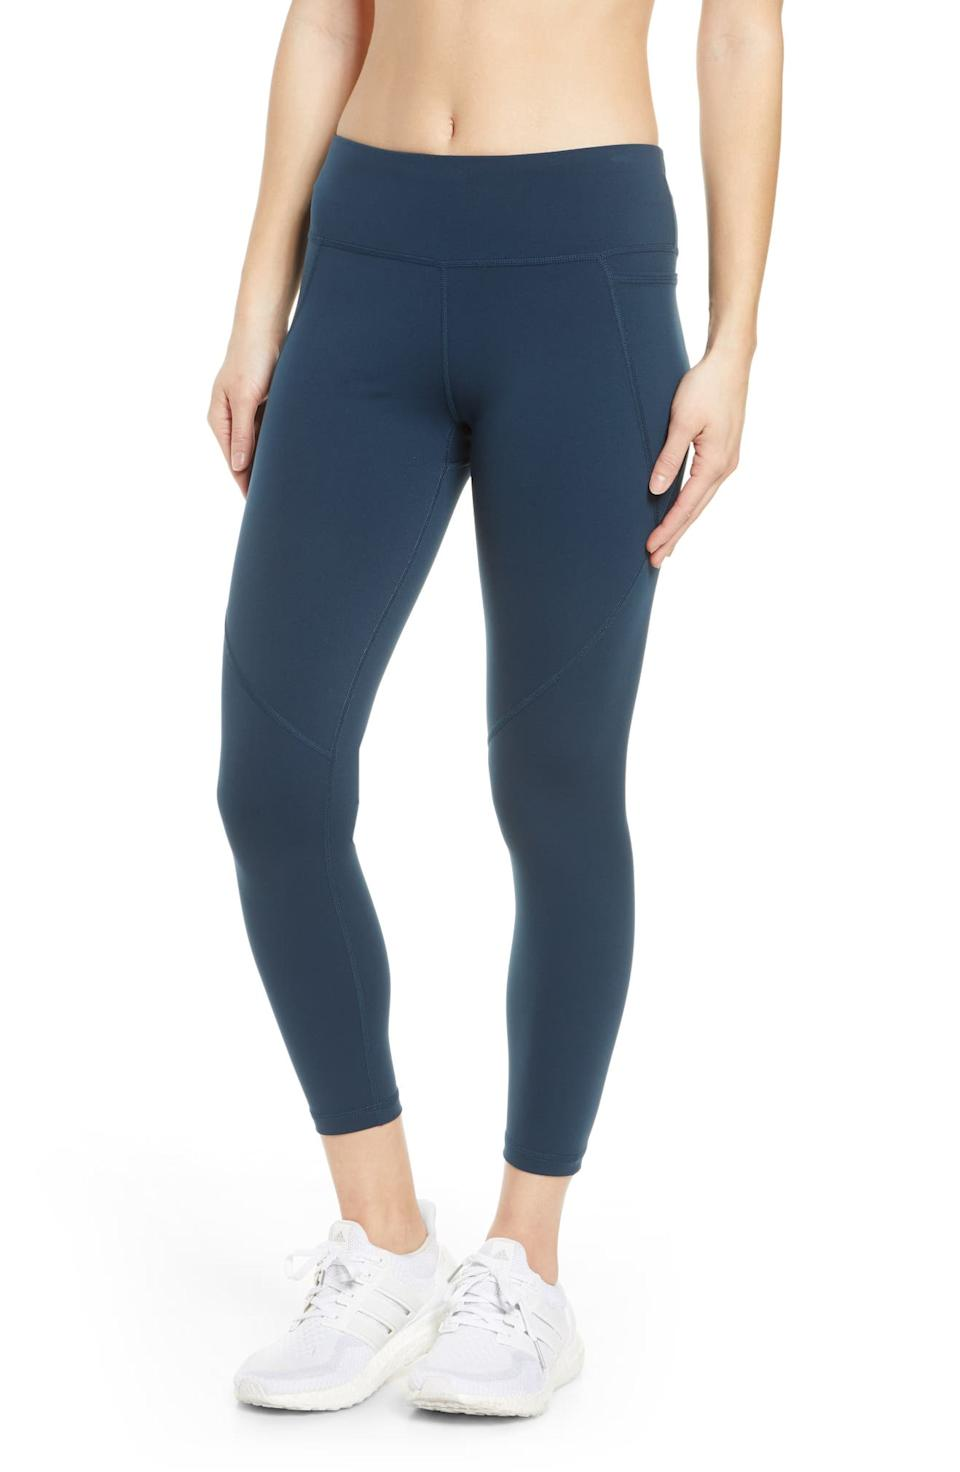 Sweaty Betty Power Sculpt Pocket Workout 7/8 Leggings. Image via Nordstrom.